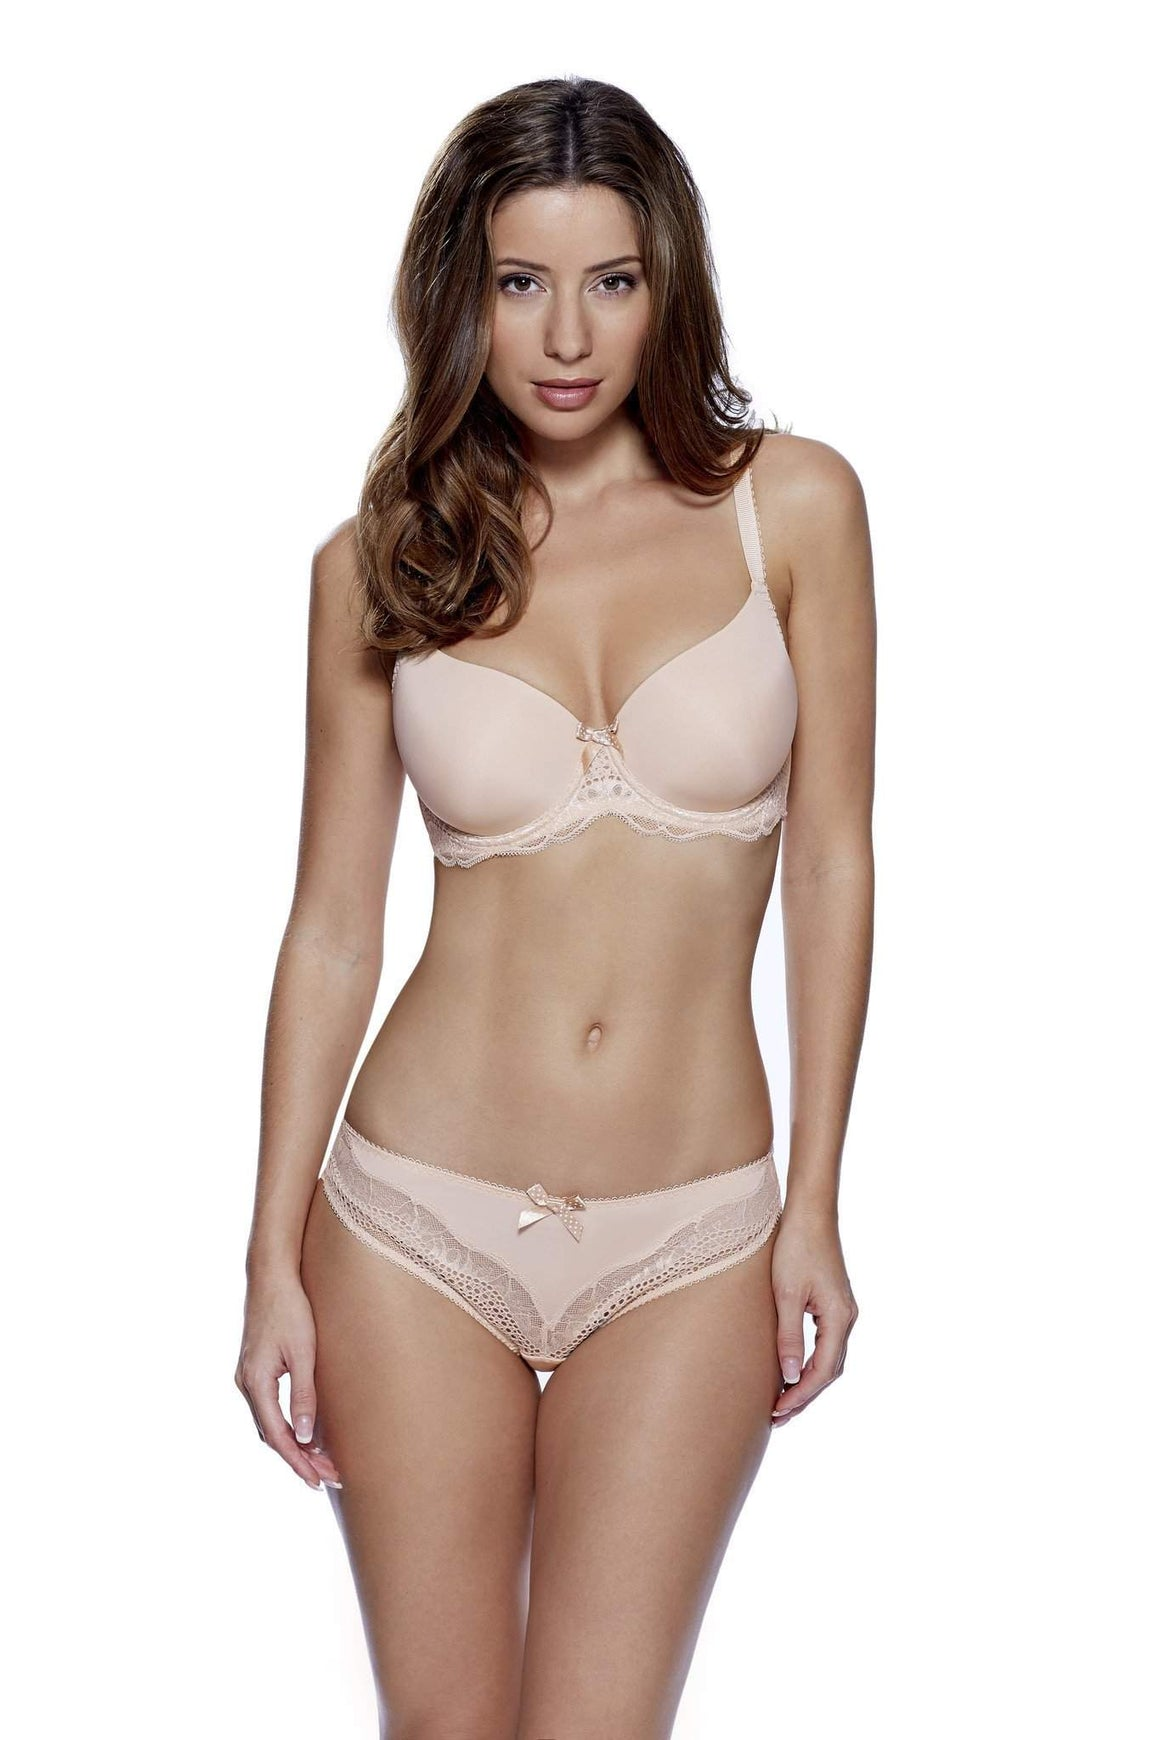 Lyla T-Shirt Bra in Nude by Lepel - Charnos / Lepel - Katys Boutique Lingerie USA